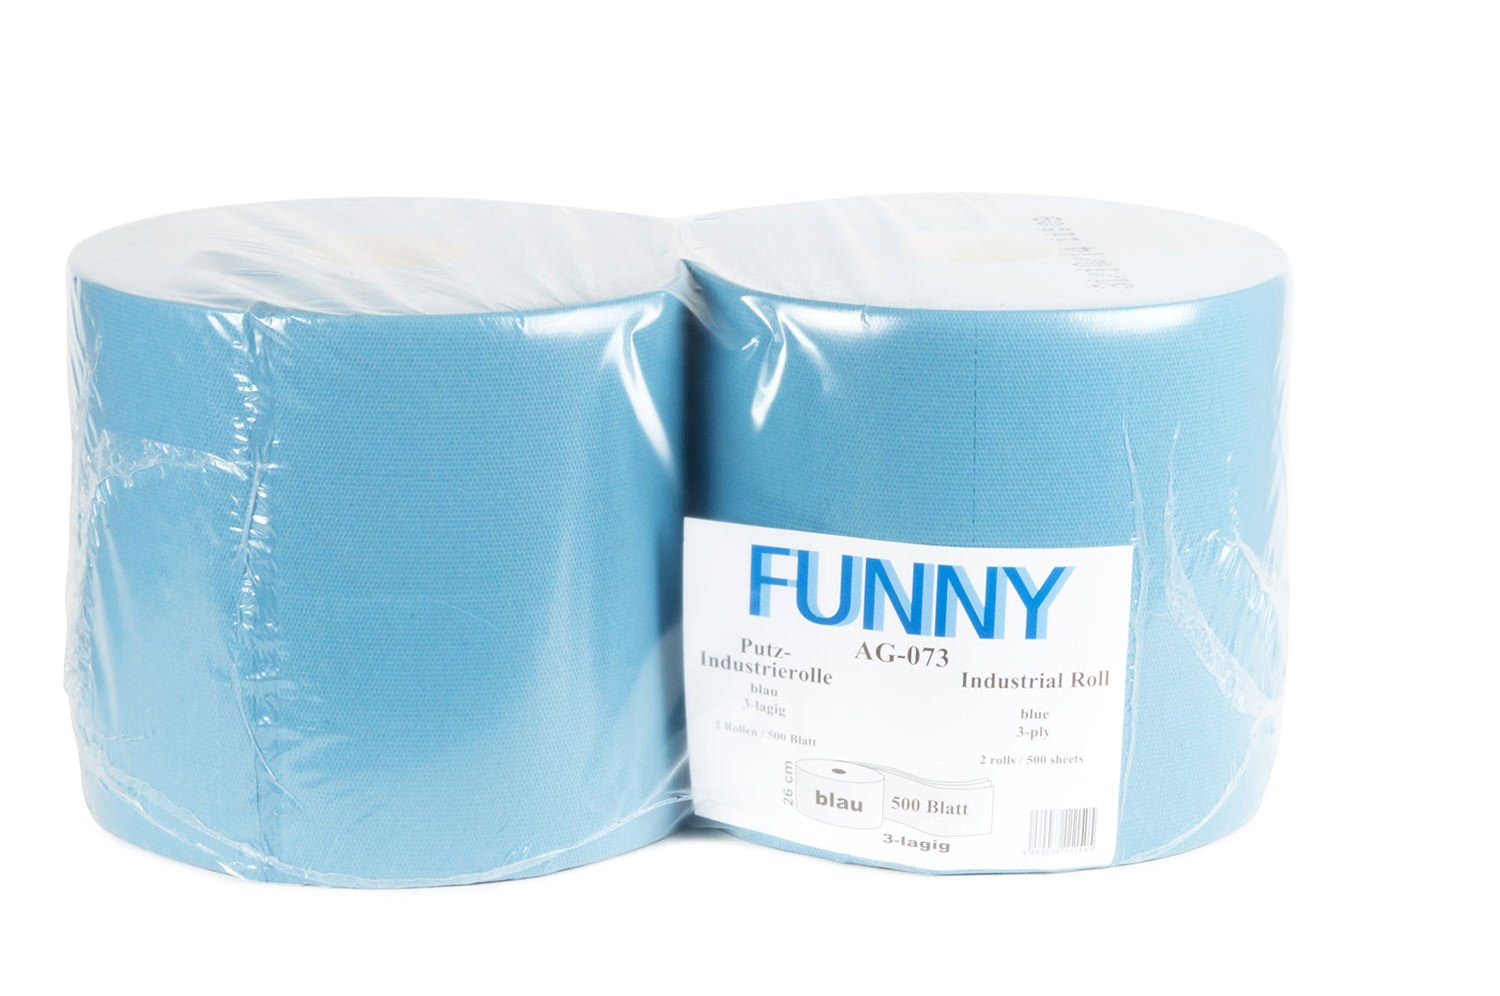 500 Sheets 26 cm Blue Approx Funny 3-Ply Shop Towels Recycled 1 Pack of 2